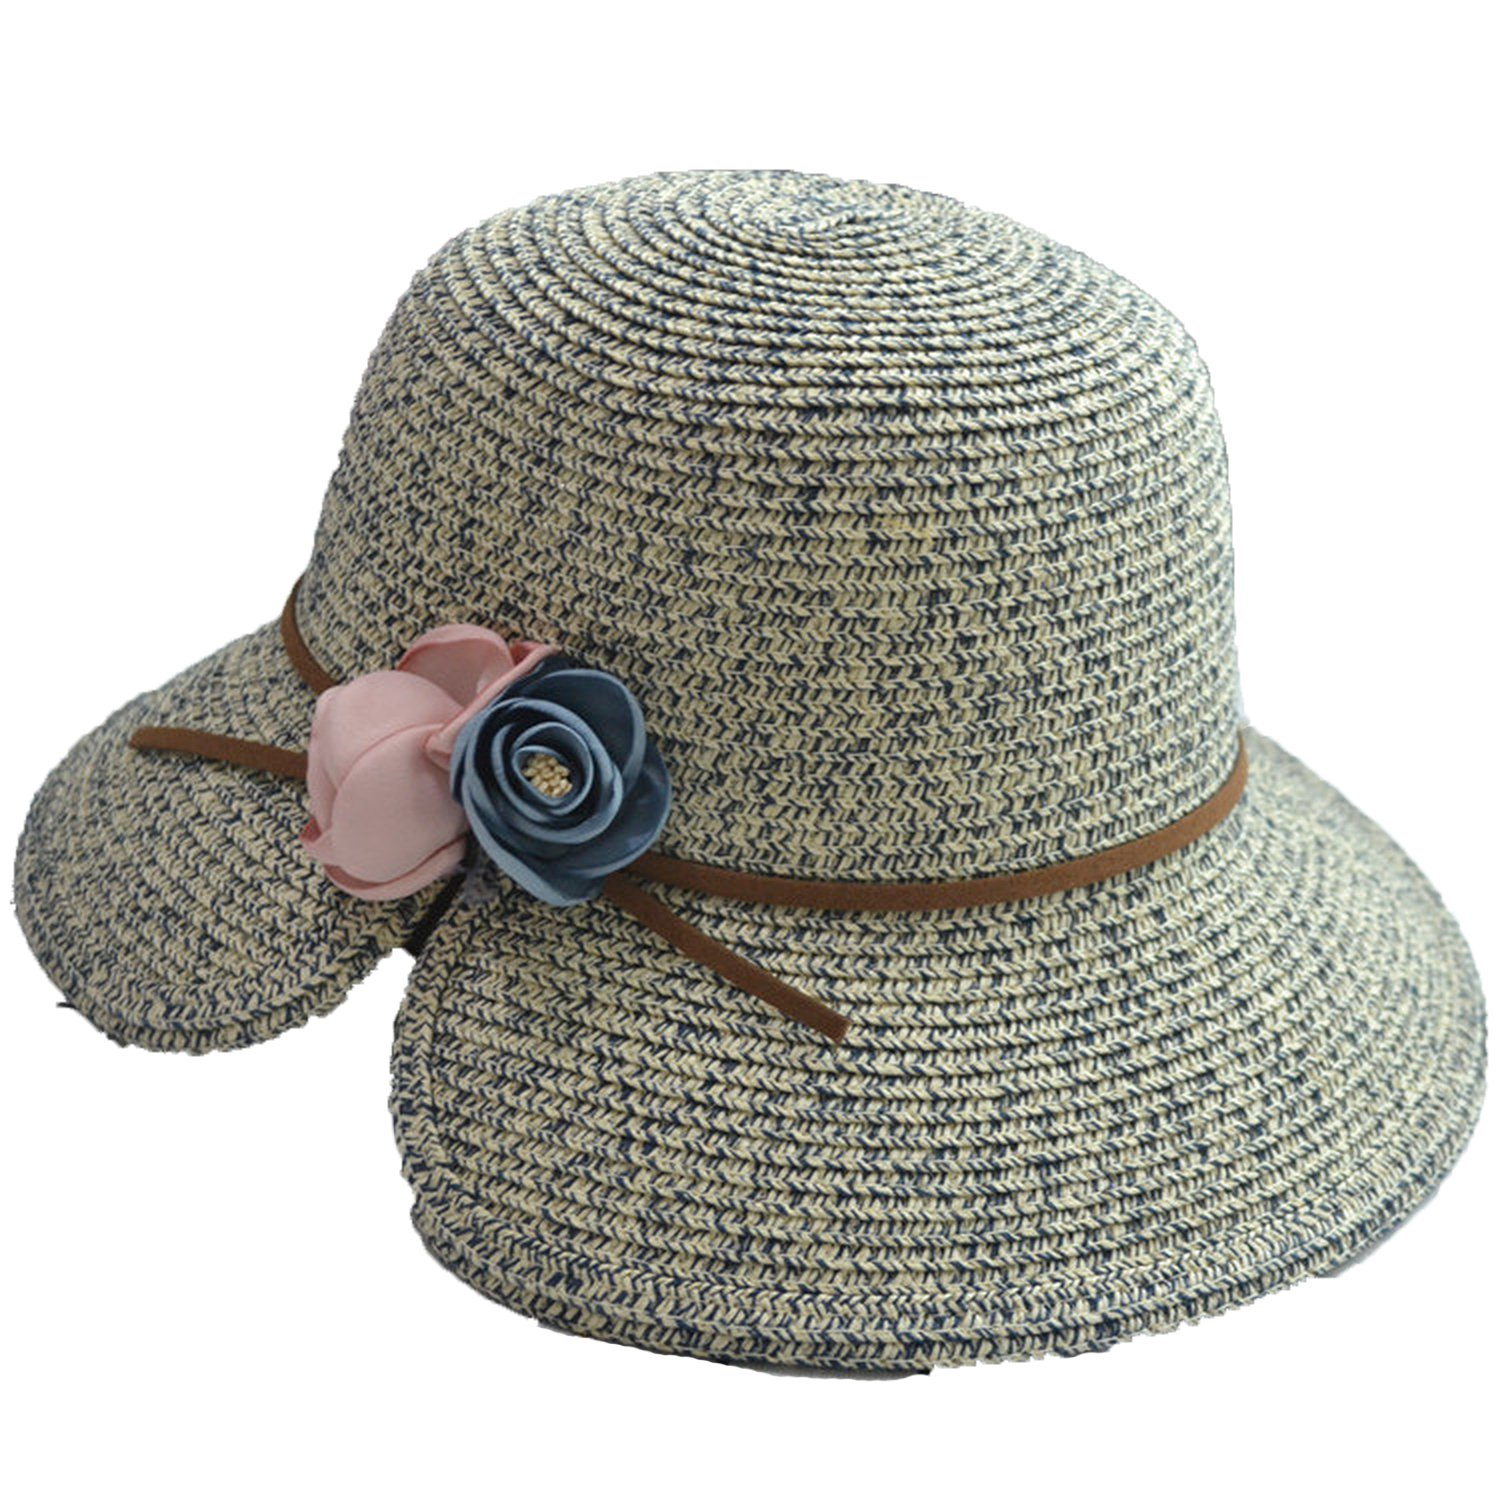 Attack Parenting Straw Hat Flowers Gap Fisherman Hat Leather Rope Sun Hat 7fb6d0c5412